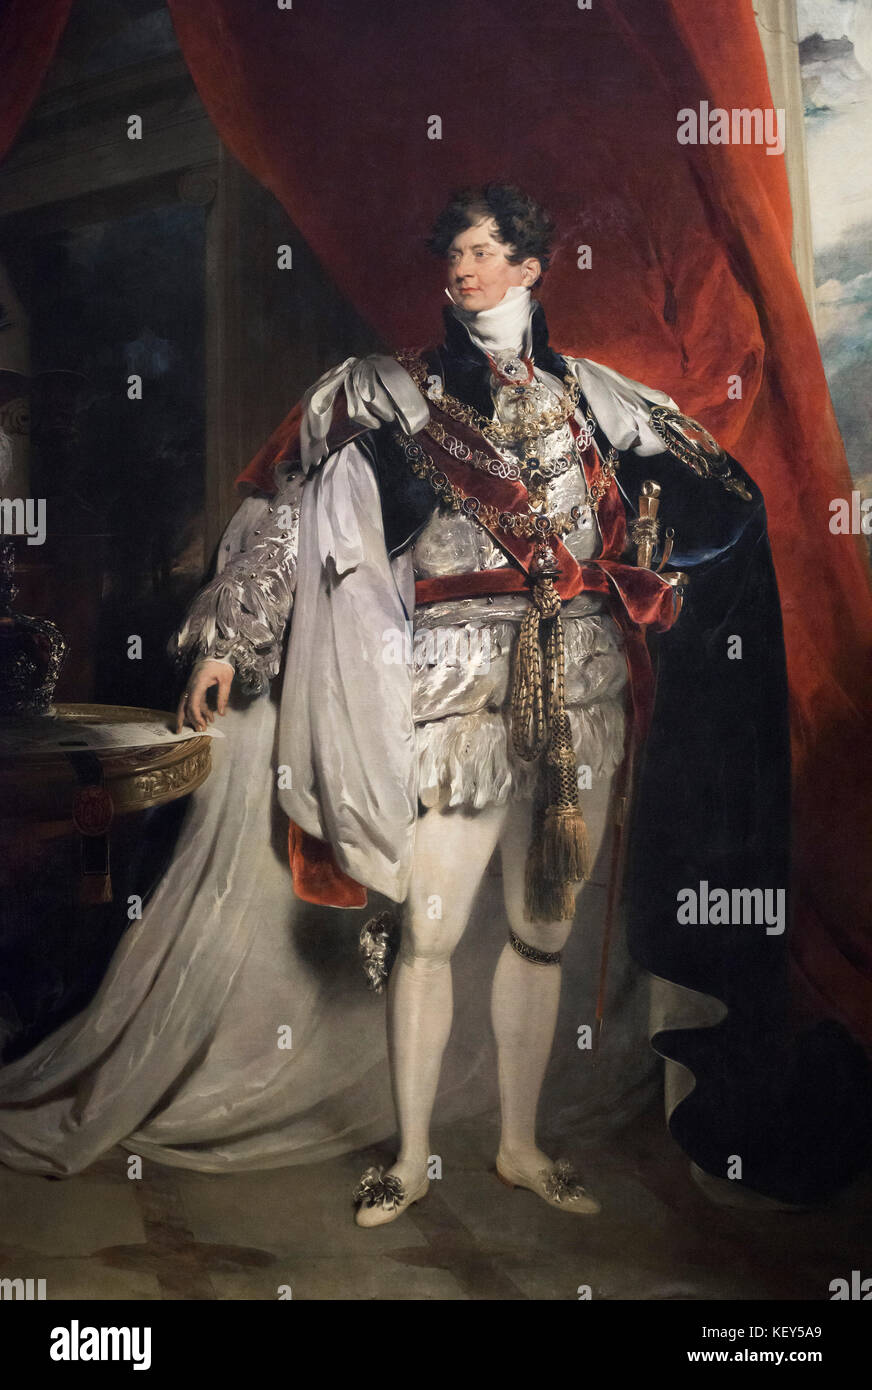 Thomas Lawrence (1769-1830), Portrait of George IV of England as Prince Regent, n.d. - Stock Image